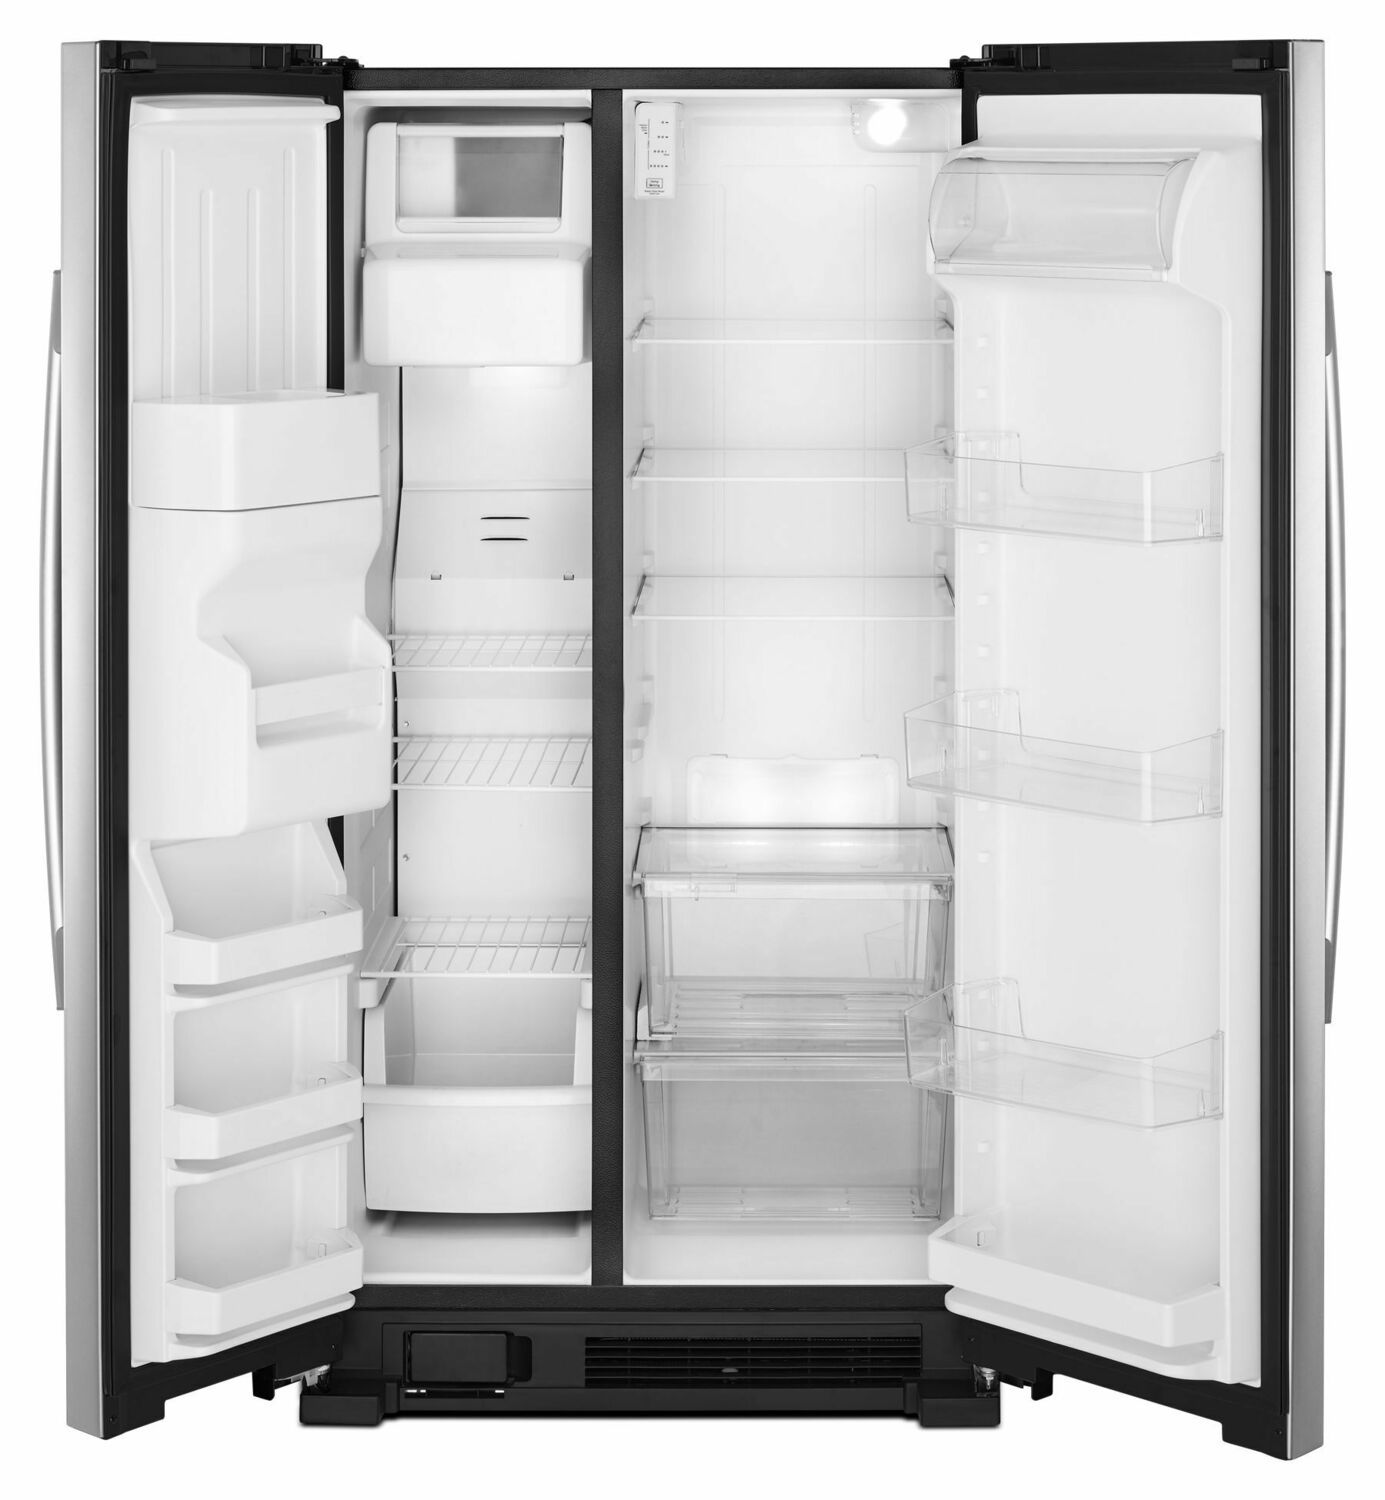 Asi2575grs Amana 36 Inch Side By Side Refrigerator With